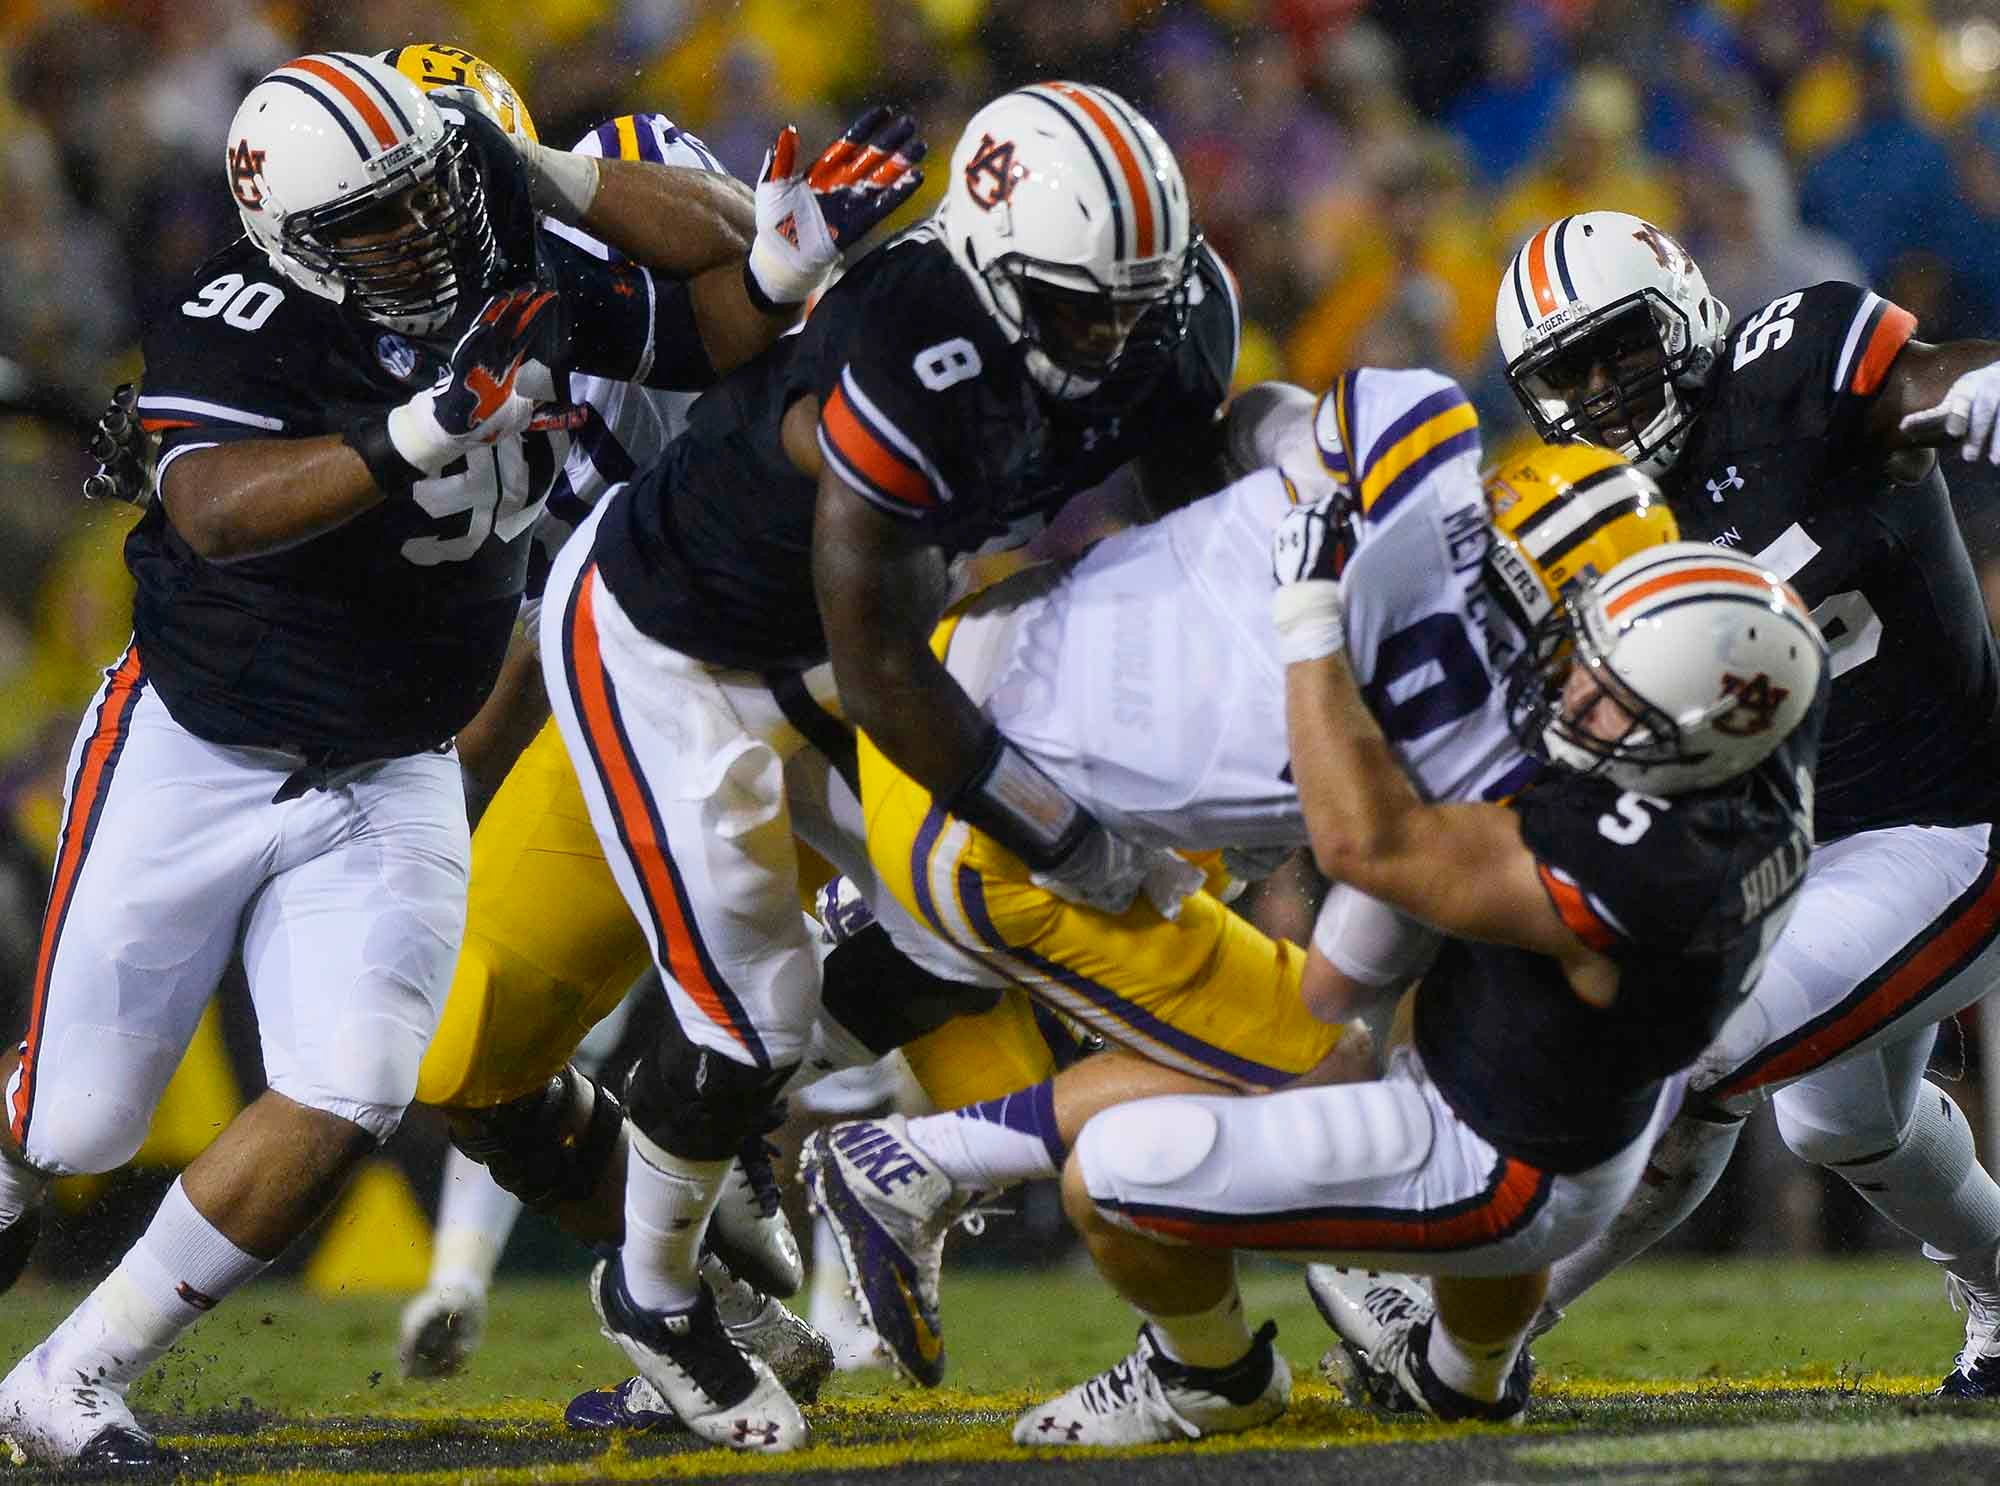 LSU quarterback Zach Mettenberger gets sacked by the Auburn defense. Mettenberger has gotten off to a good